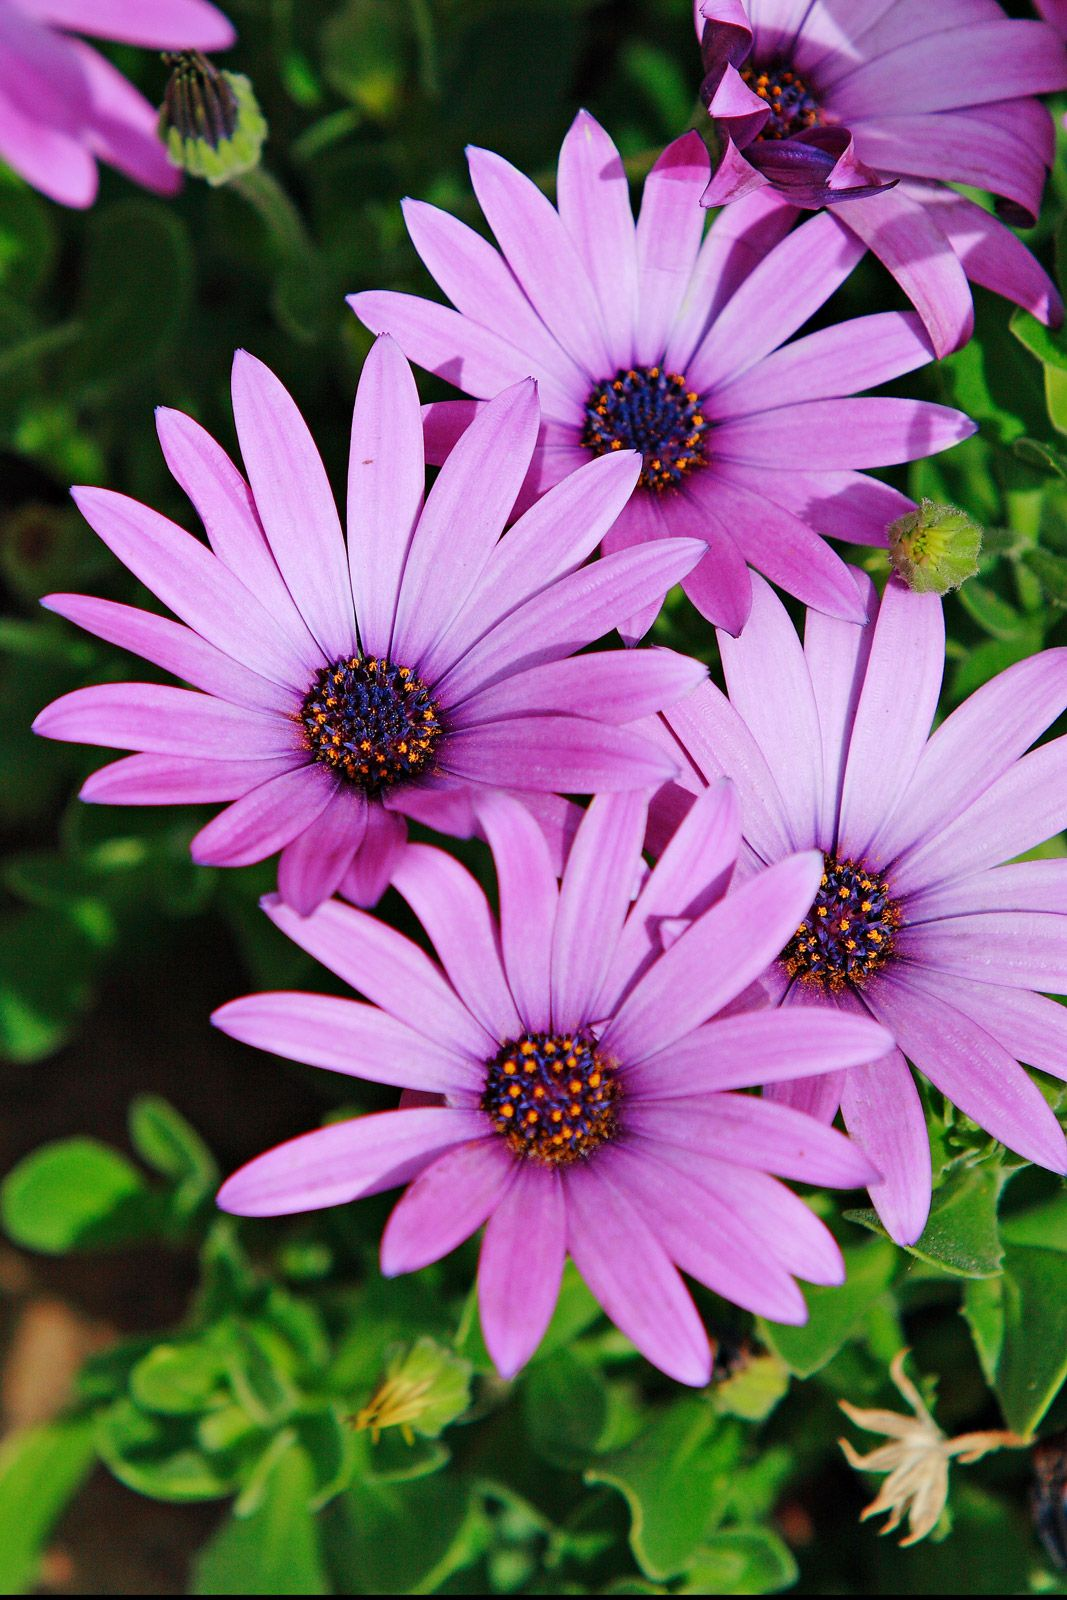 Colorful daisy flowers african daisies purple in color and colorful daisy flowers african daisies purple in color and wonderful to look at can be izmirmasajfo